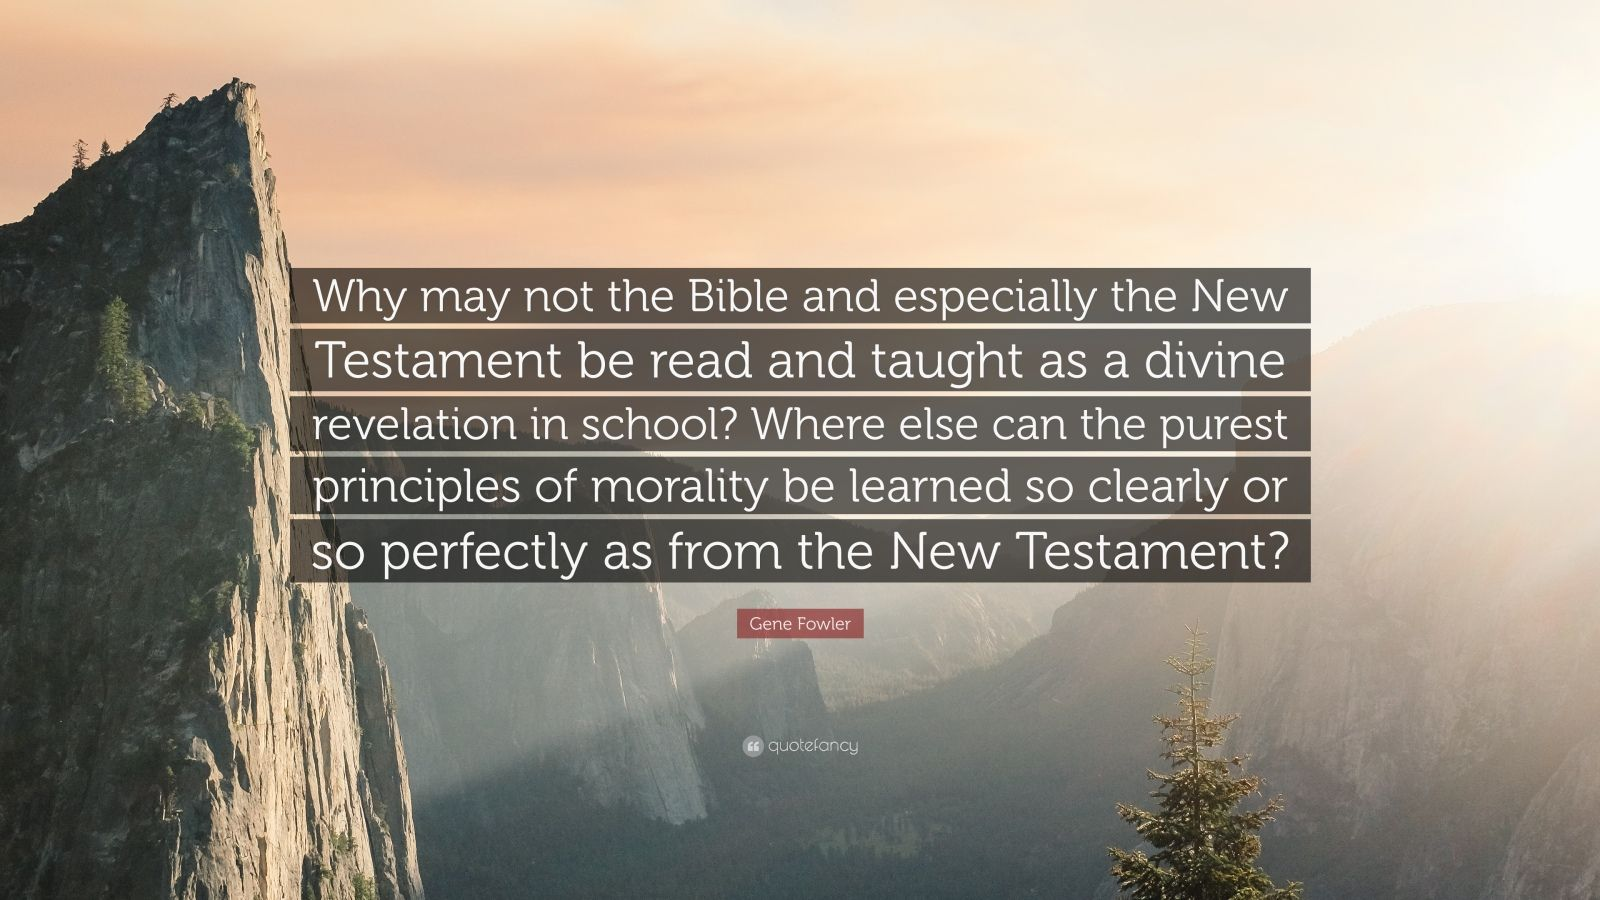 """Gene Fowler Quote: """"Why may not the Bible and especially the New Testament be read and taught as a divine revelation in school? Where else can the purest principles of morality be learned so clearly or so perfectly as from the New Testament?"""""""